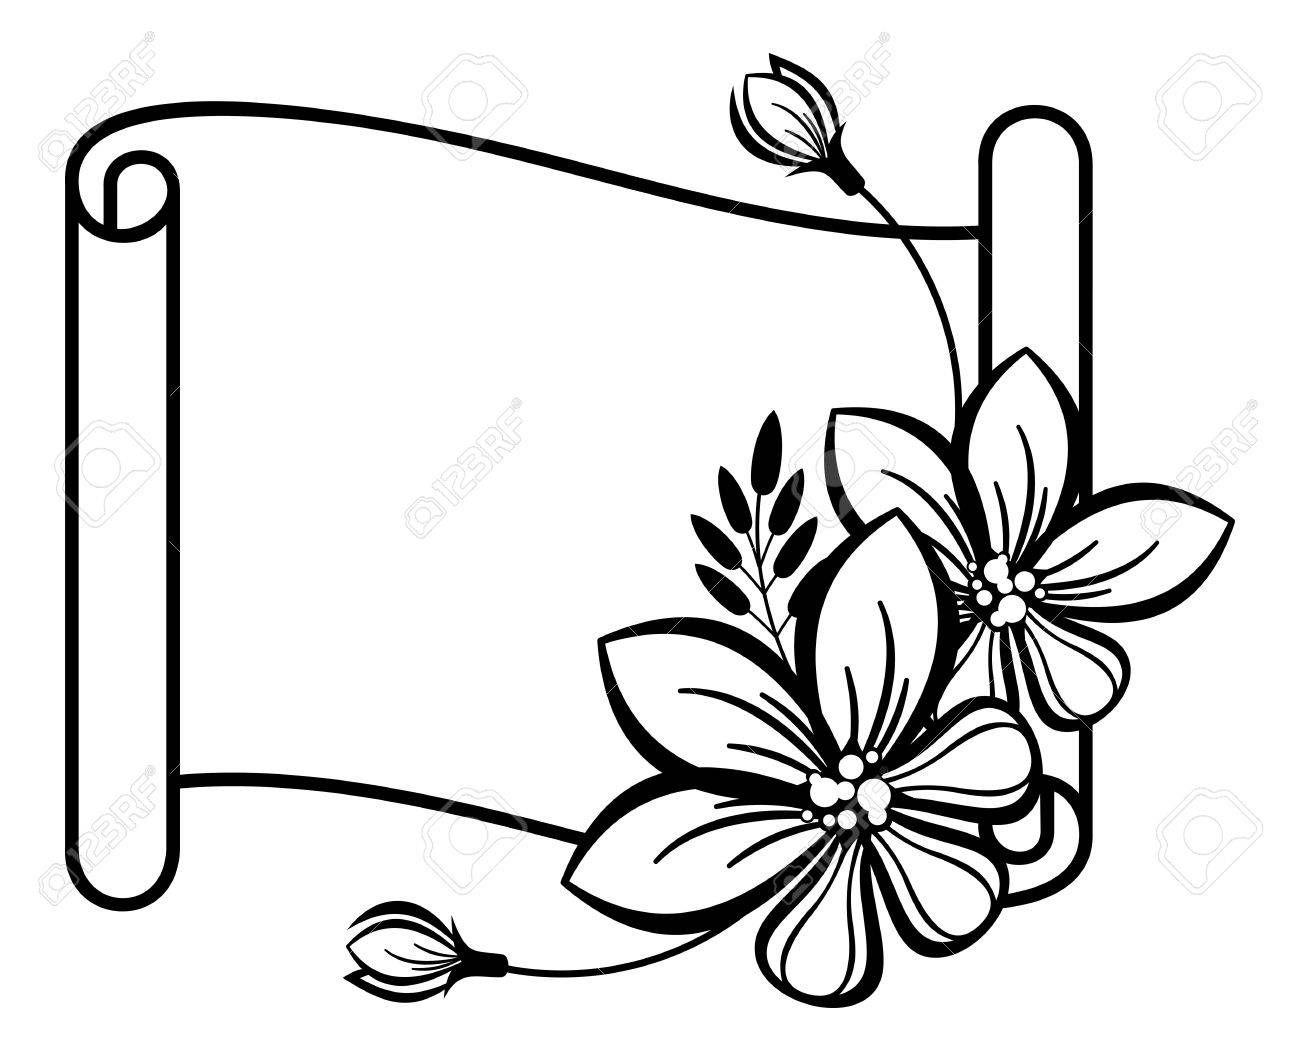 1300x1061 Contour Of The Paper Scroll With Decorative Flowers Royalty Free